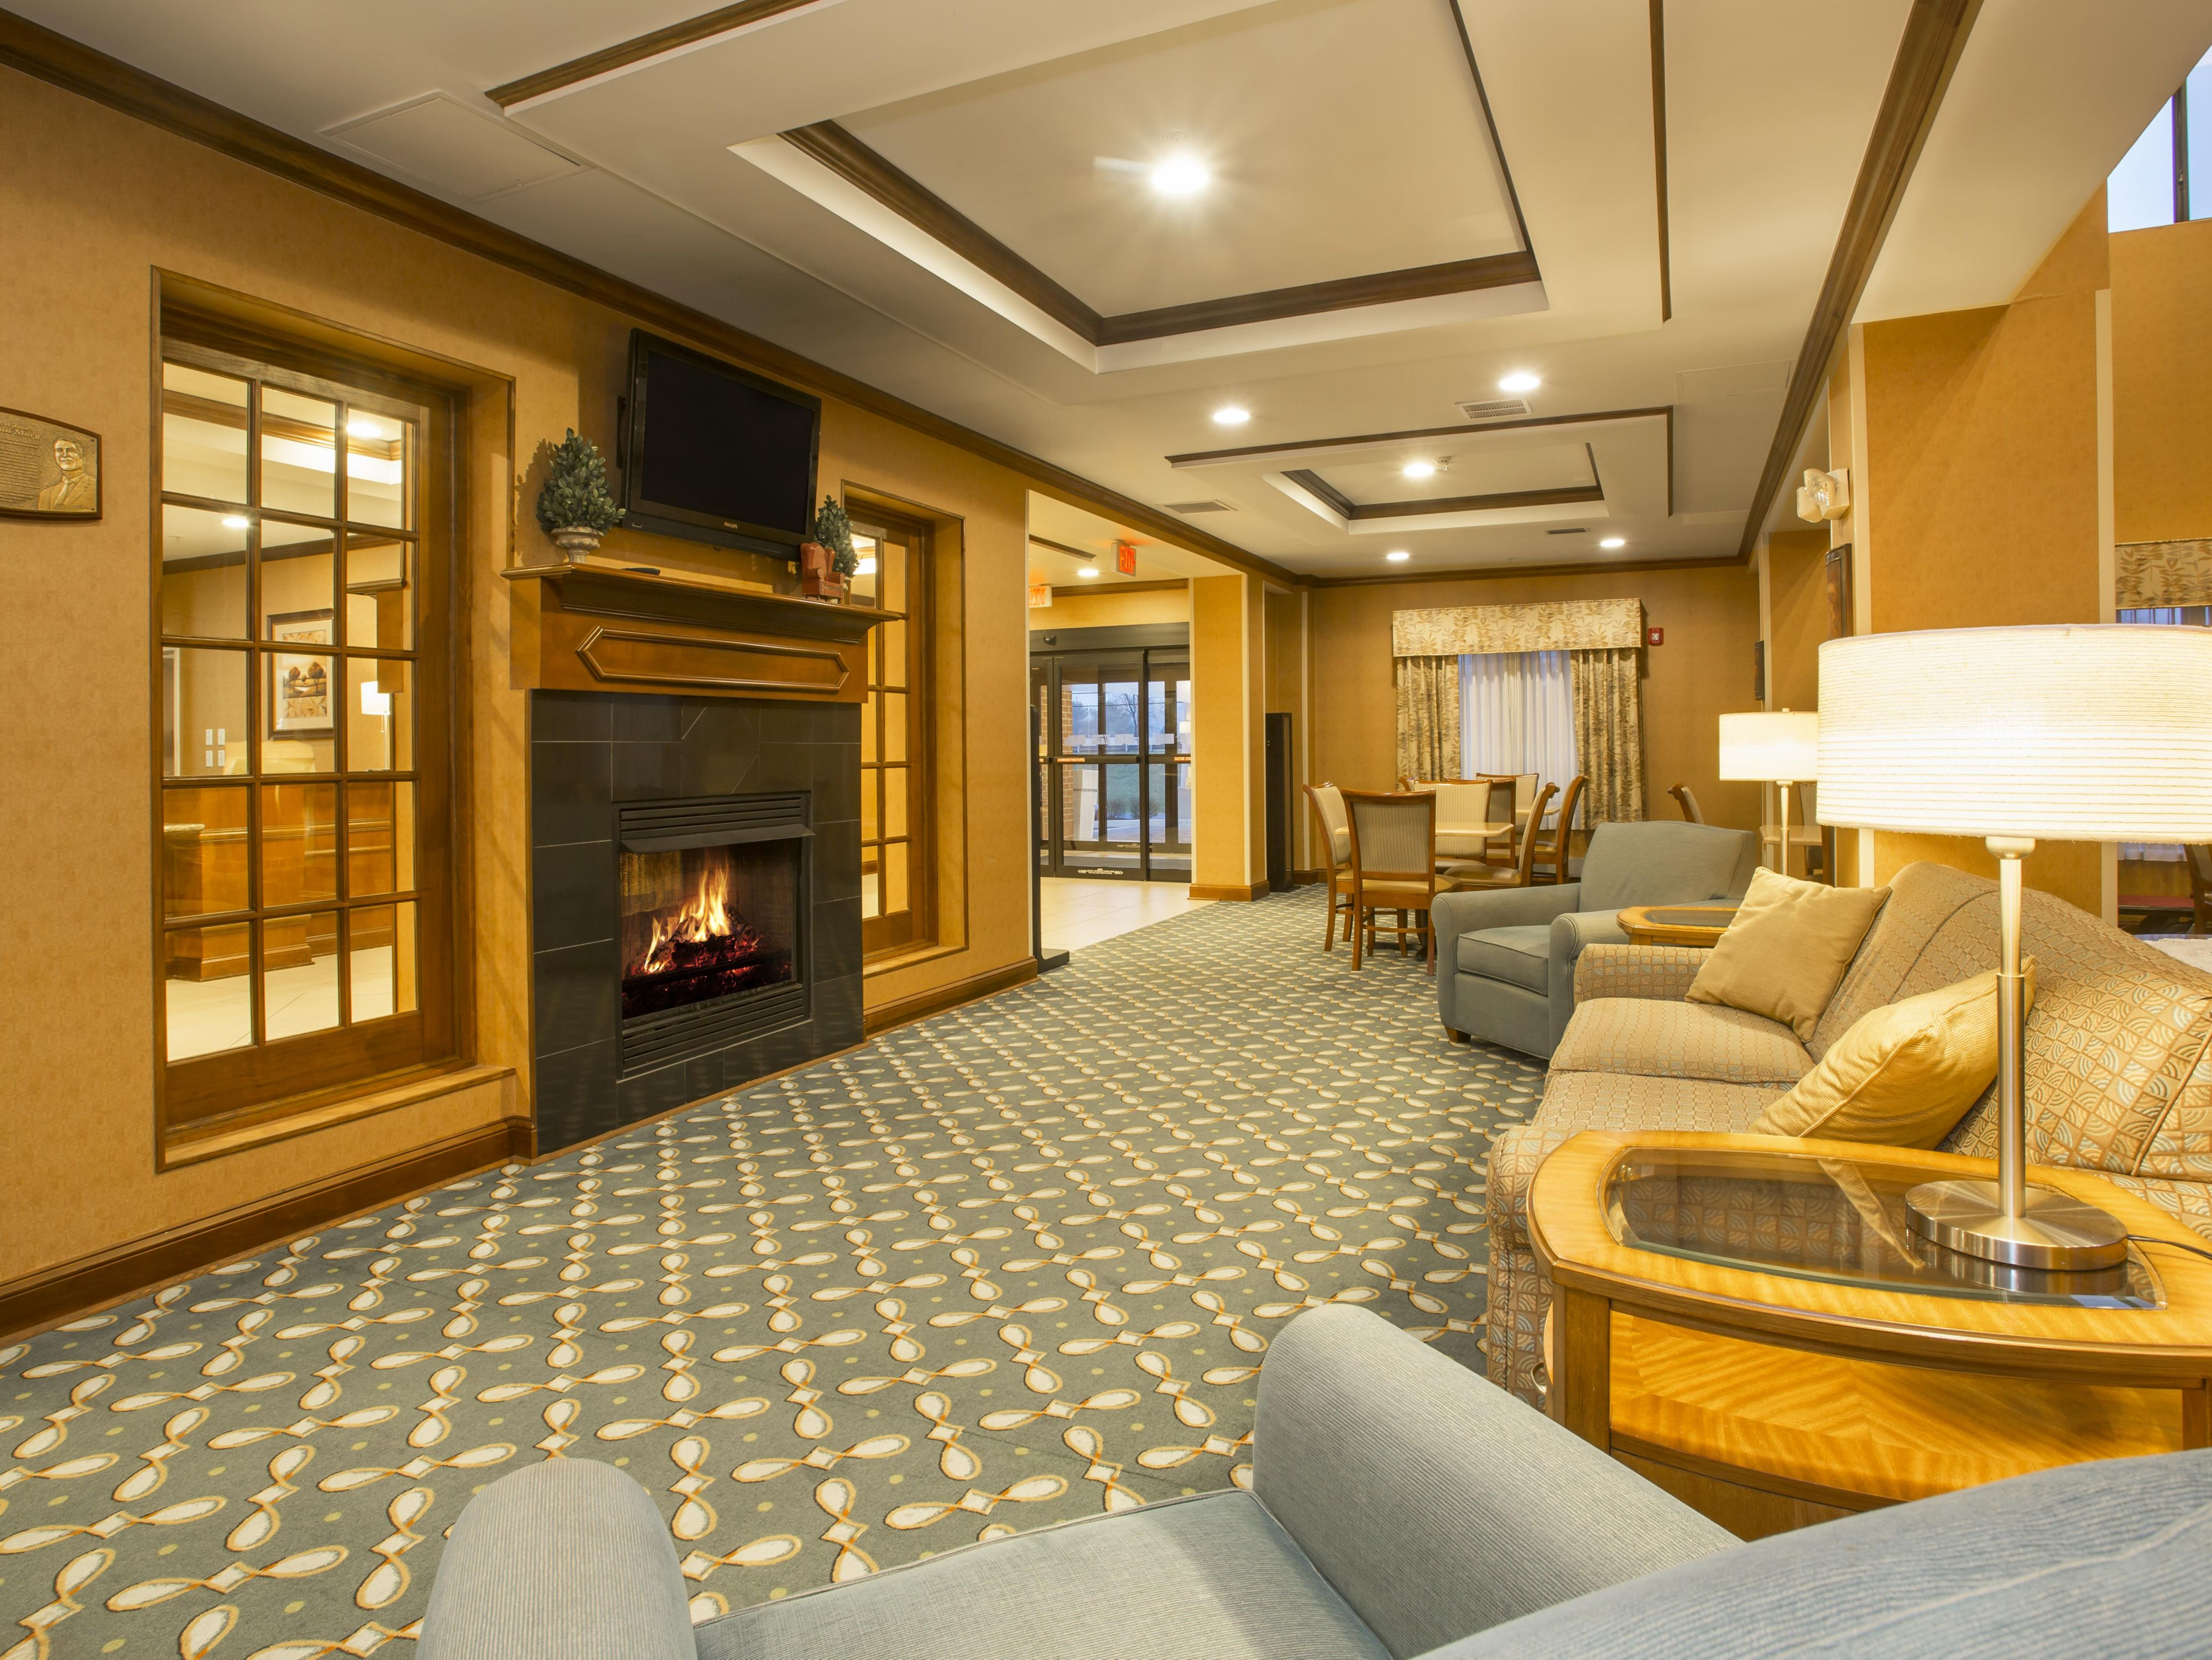 Relax by our inviting Lobby fireplace